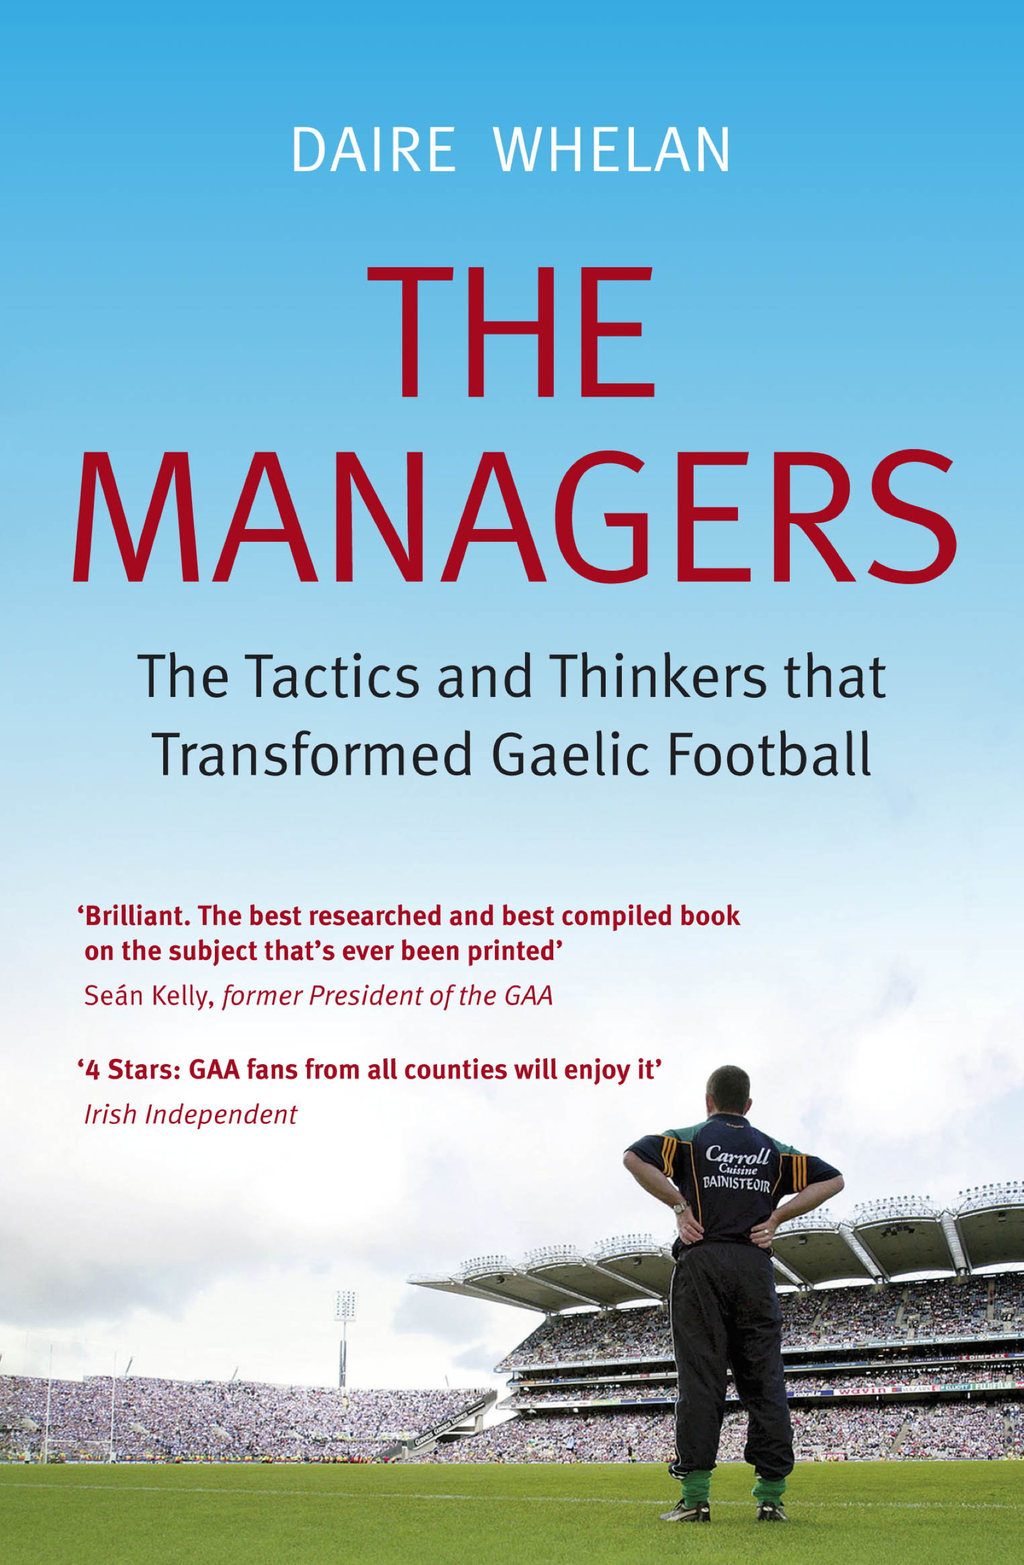 The Managers The Tactics and Thinkers that Transformed Gaelic Football